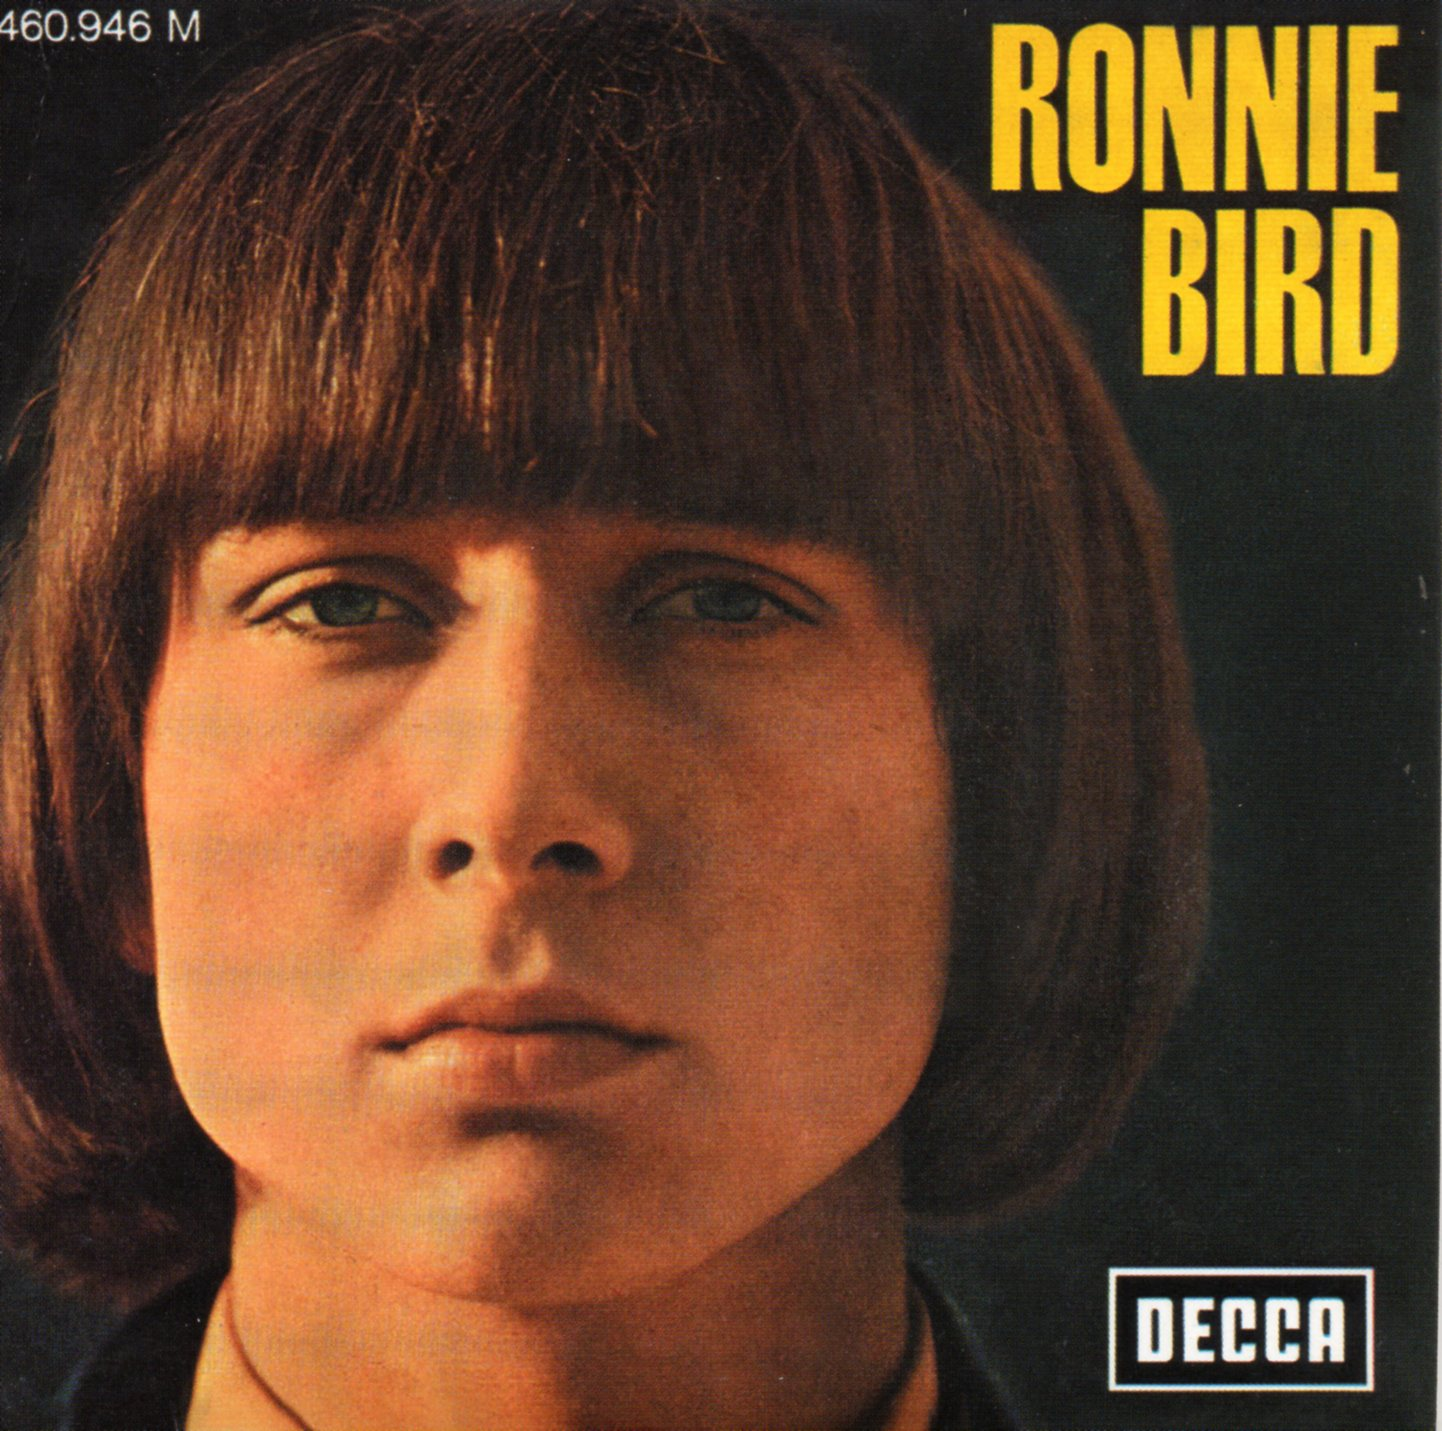 RONNIE BIRD - Où va-t-elle 4-track CARD SLEEVE - CD single